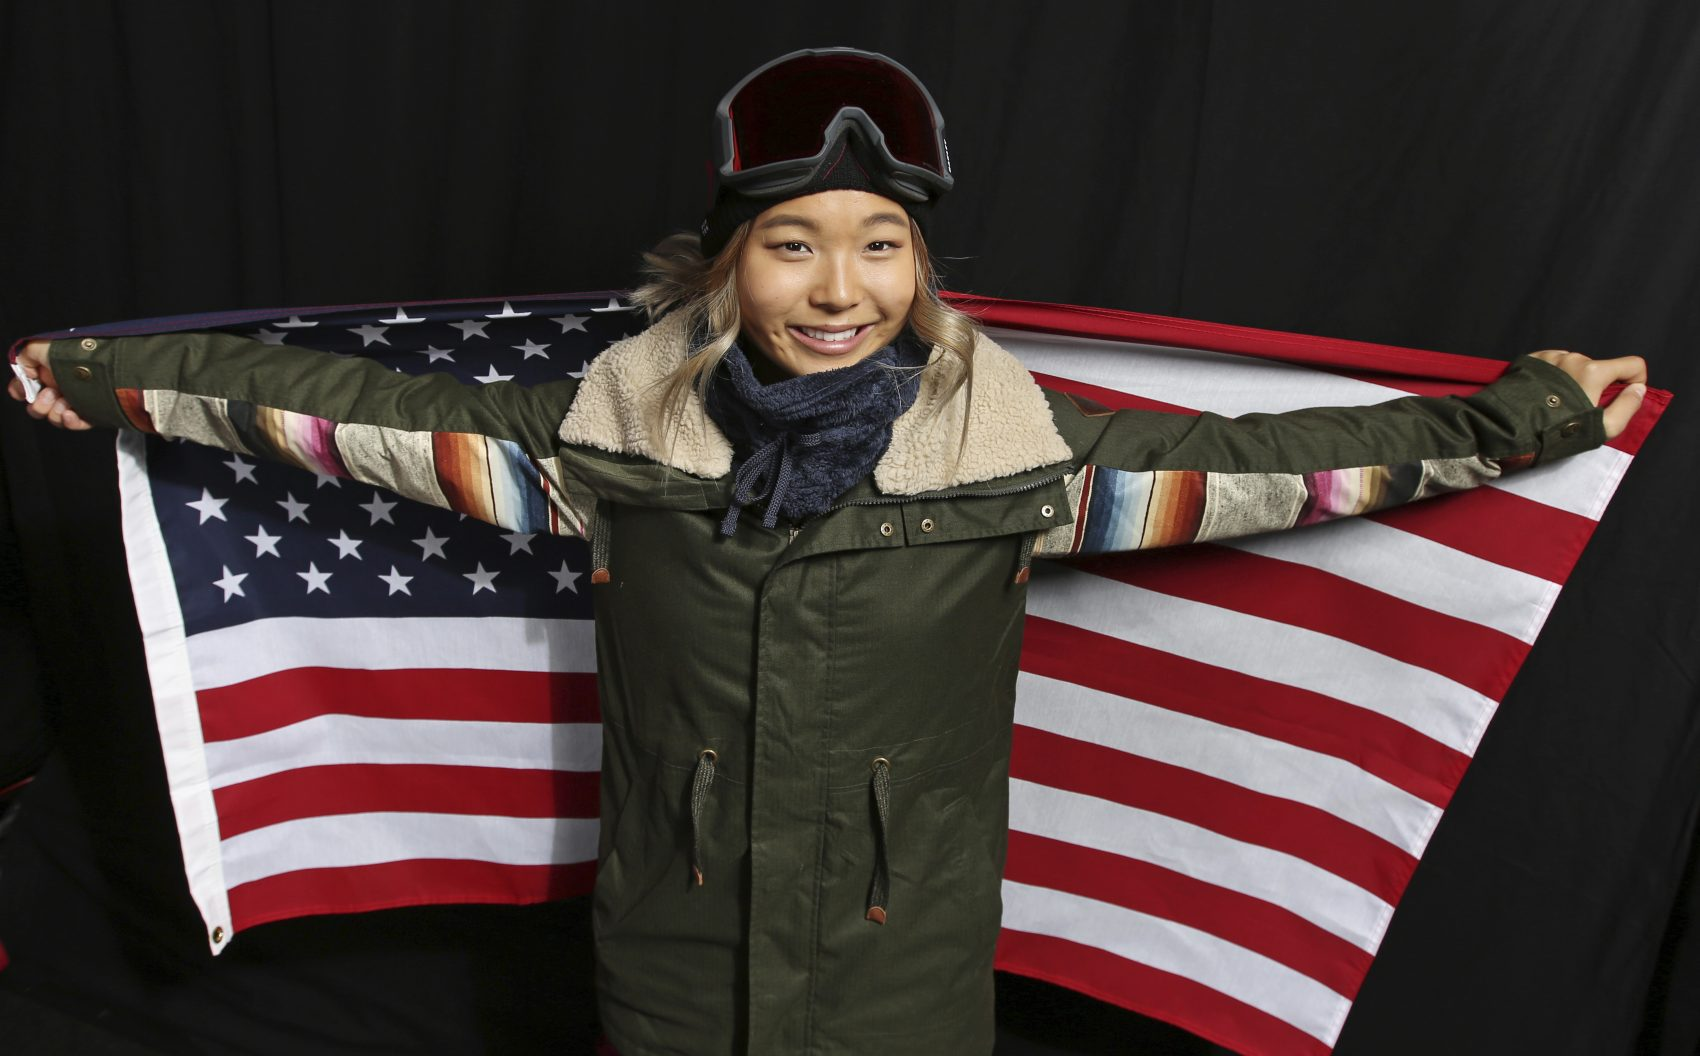 United States Olympic Winter Games Snowboarder Chloe Kim poses for a portrait at the 2017 Team USA Media Summit Monday, Sept. 25, 2017, in Park City, Utah. (Rick Bowmer/AP)